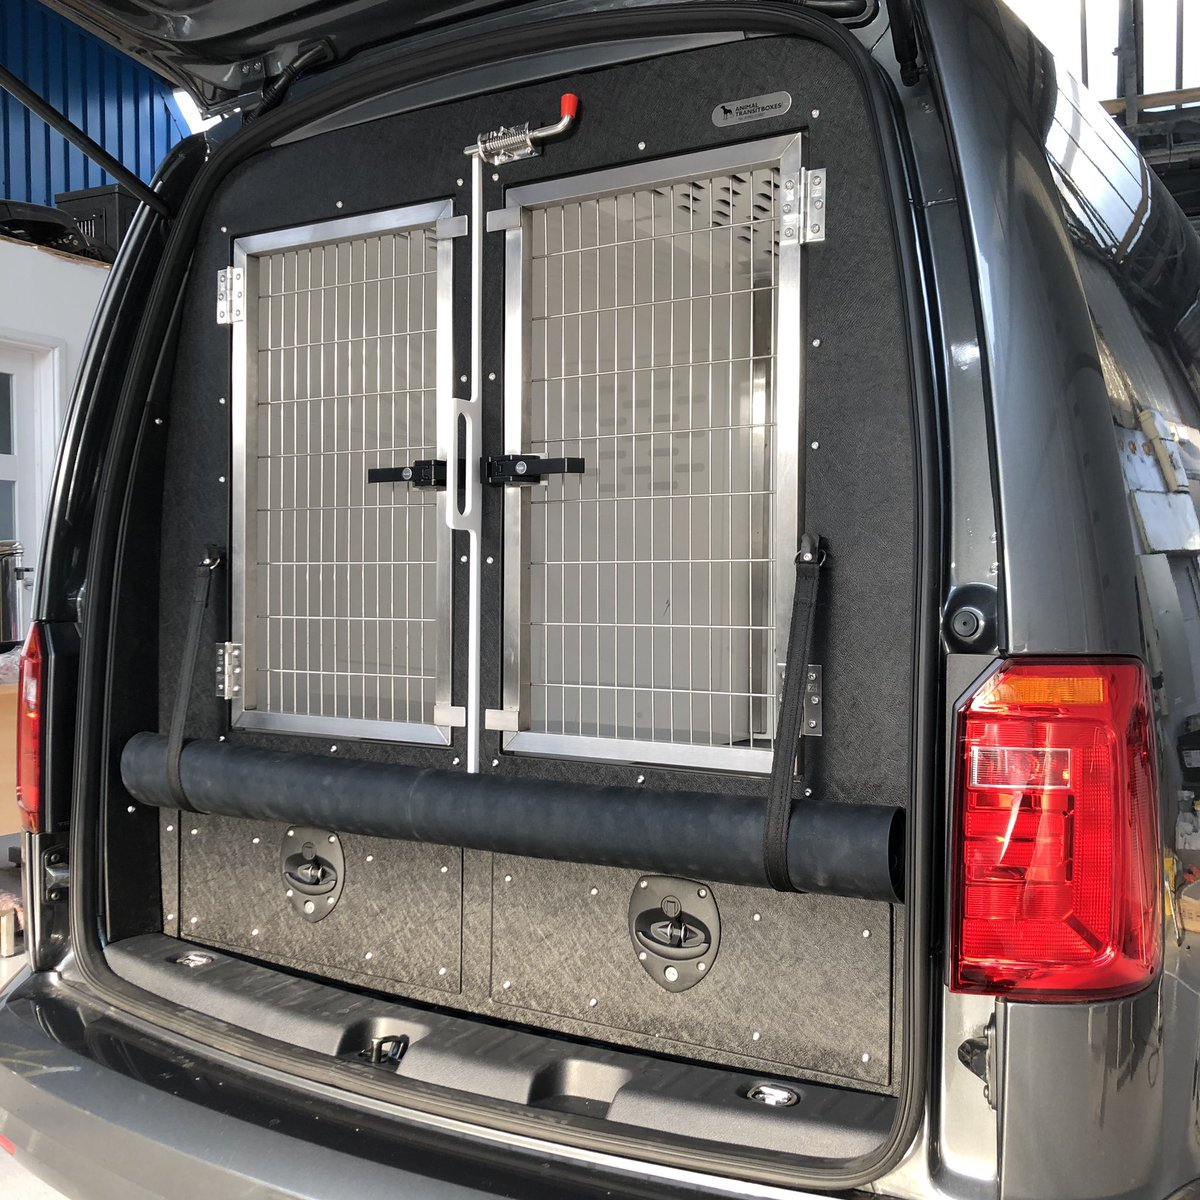 Animal Transit Boxes On Twitter Vw Caddy Custom Built Dog Vehicle Conversion Complete With Vehicle Storage Drawers Rear Escape Hatches Removable Divider And Stainless Steel Key Lockable Doors Animaltransitboxes Dogvan Dogvehicle Dogtransit